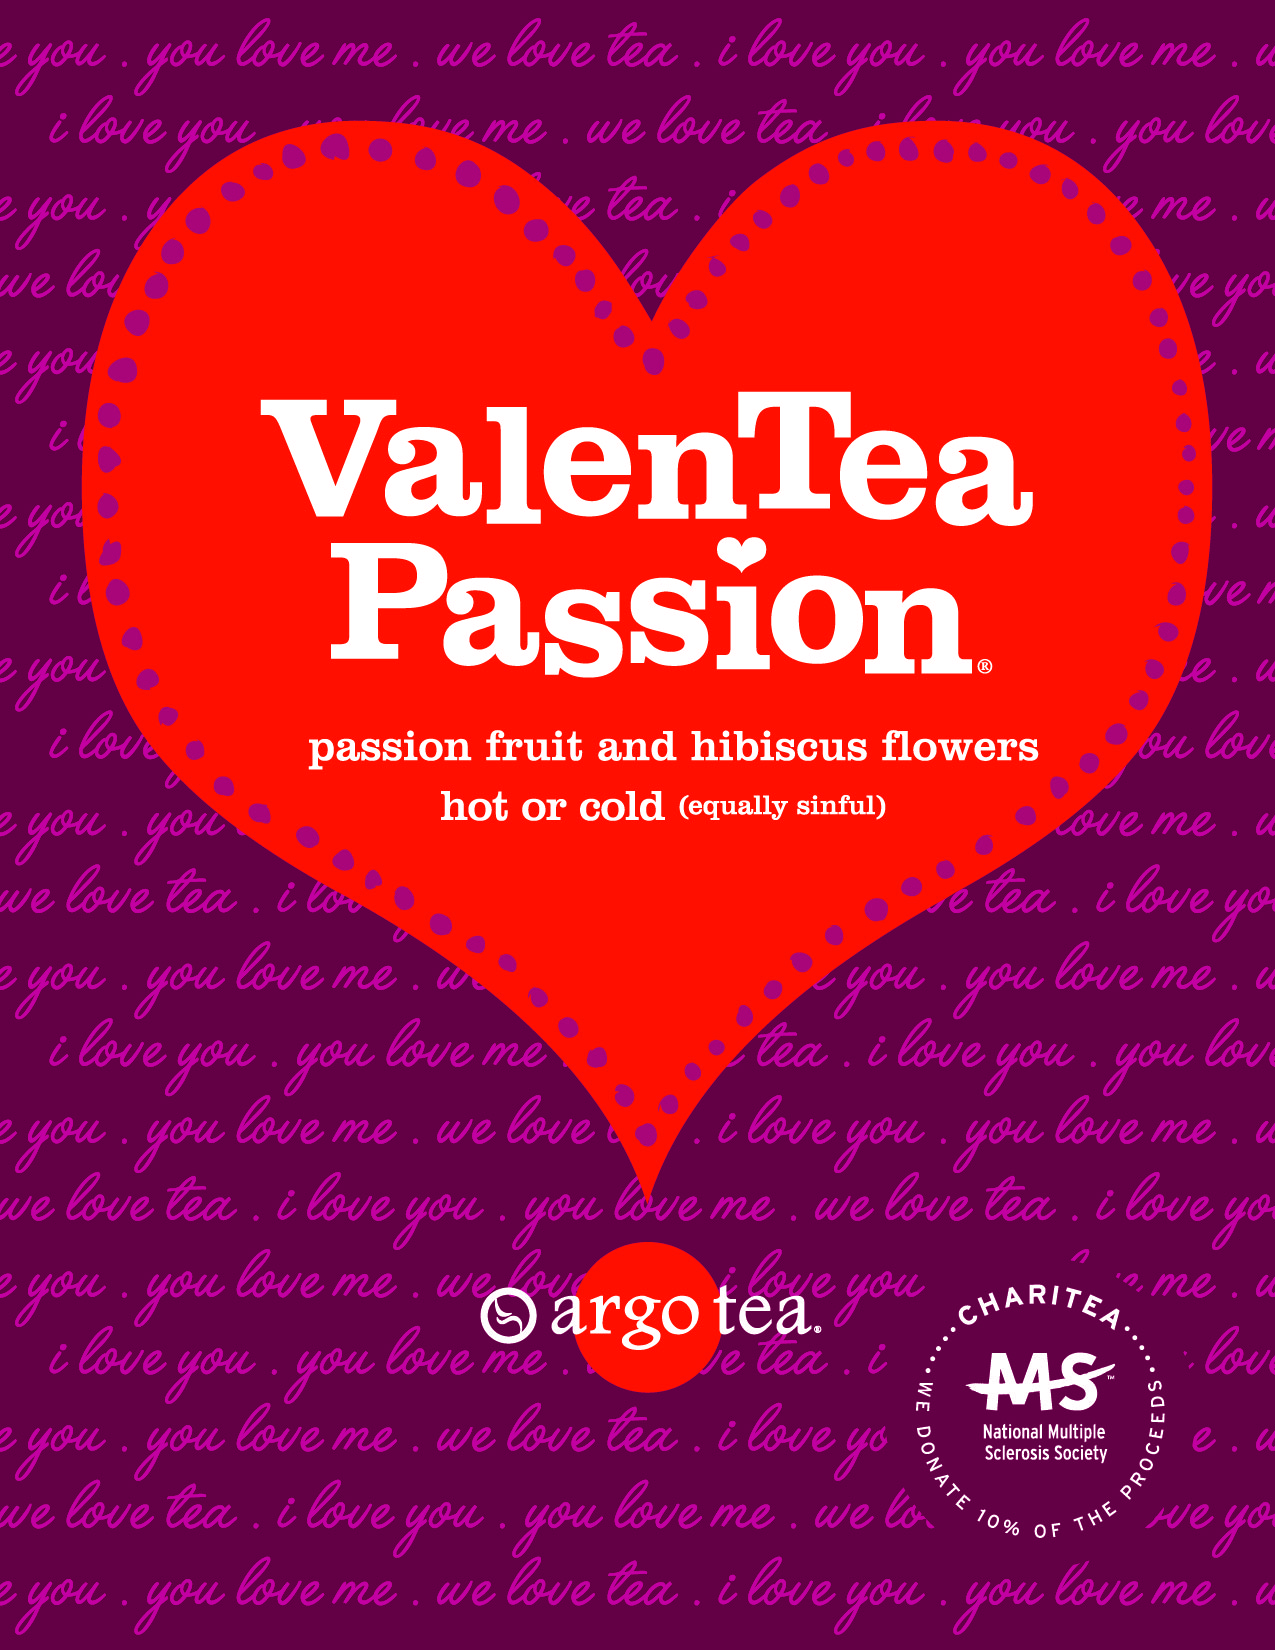 ILD_2013 Signage_SeasonalDrink_ValenteaPassion_8 5x11_CHI-01